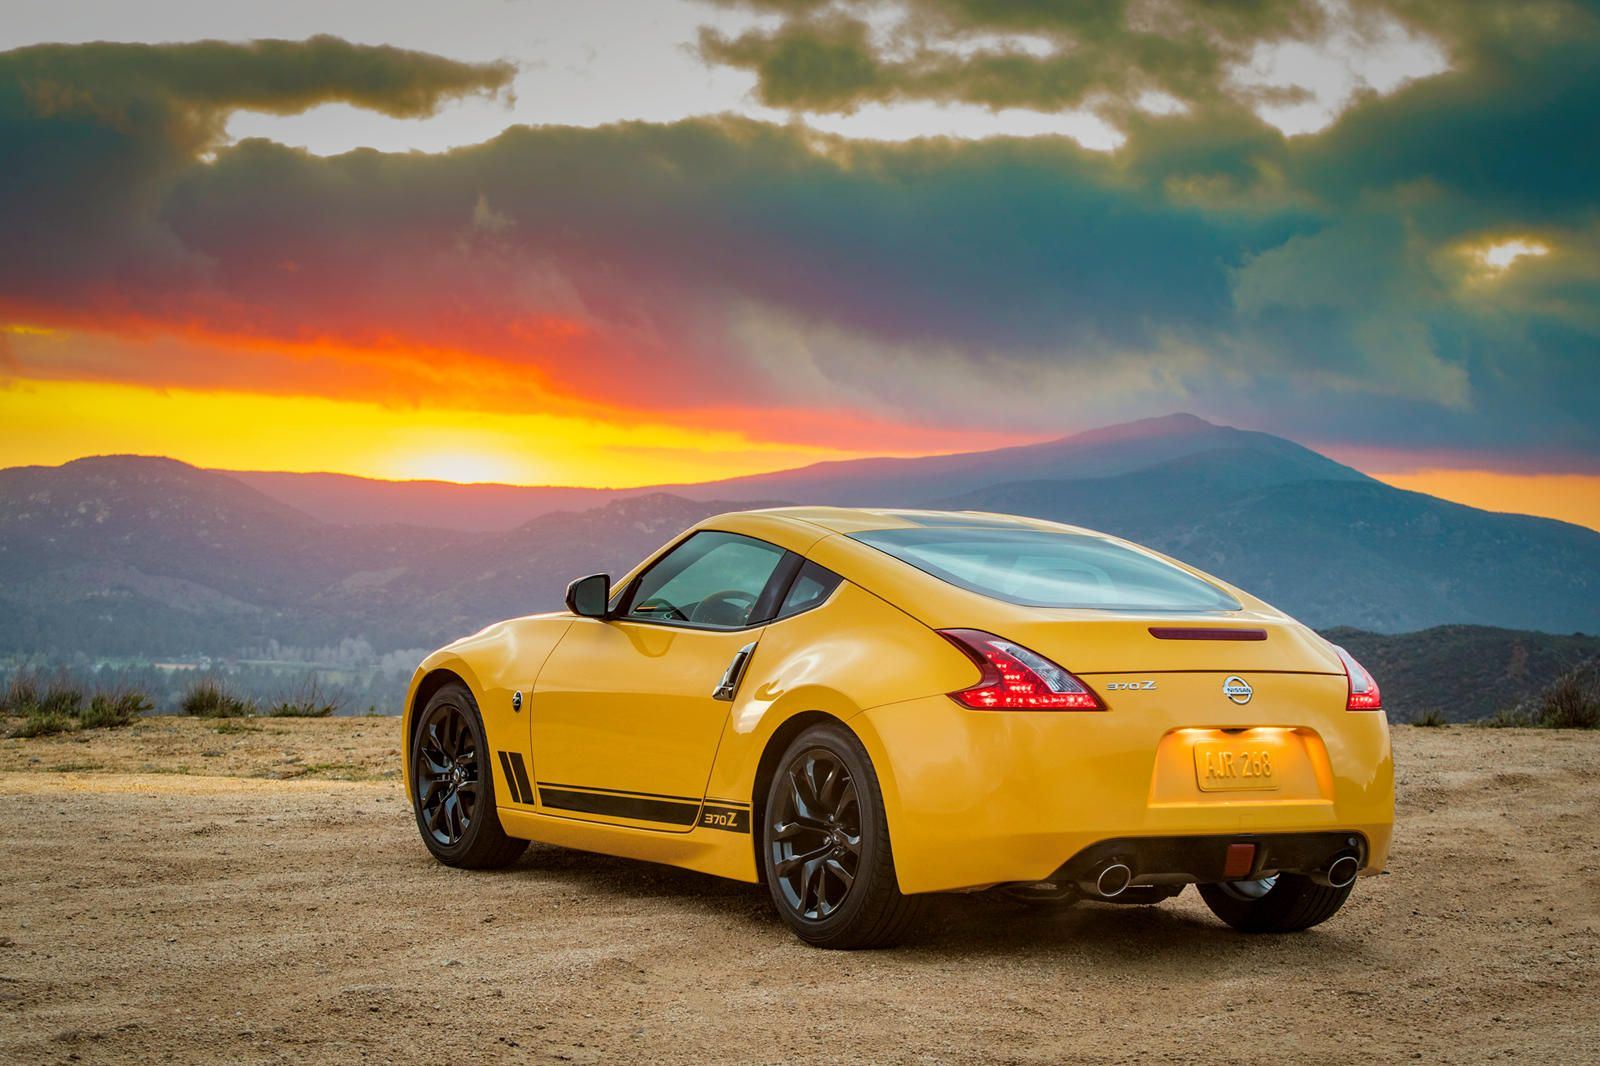 The Nissan 400z Could Be In Trouble Nissan Is Developing A New Z Car That Much Is Certain But Will It Ever Make It To Market In 2020 Nissan 370z